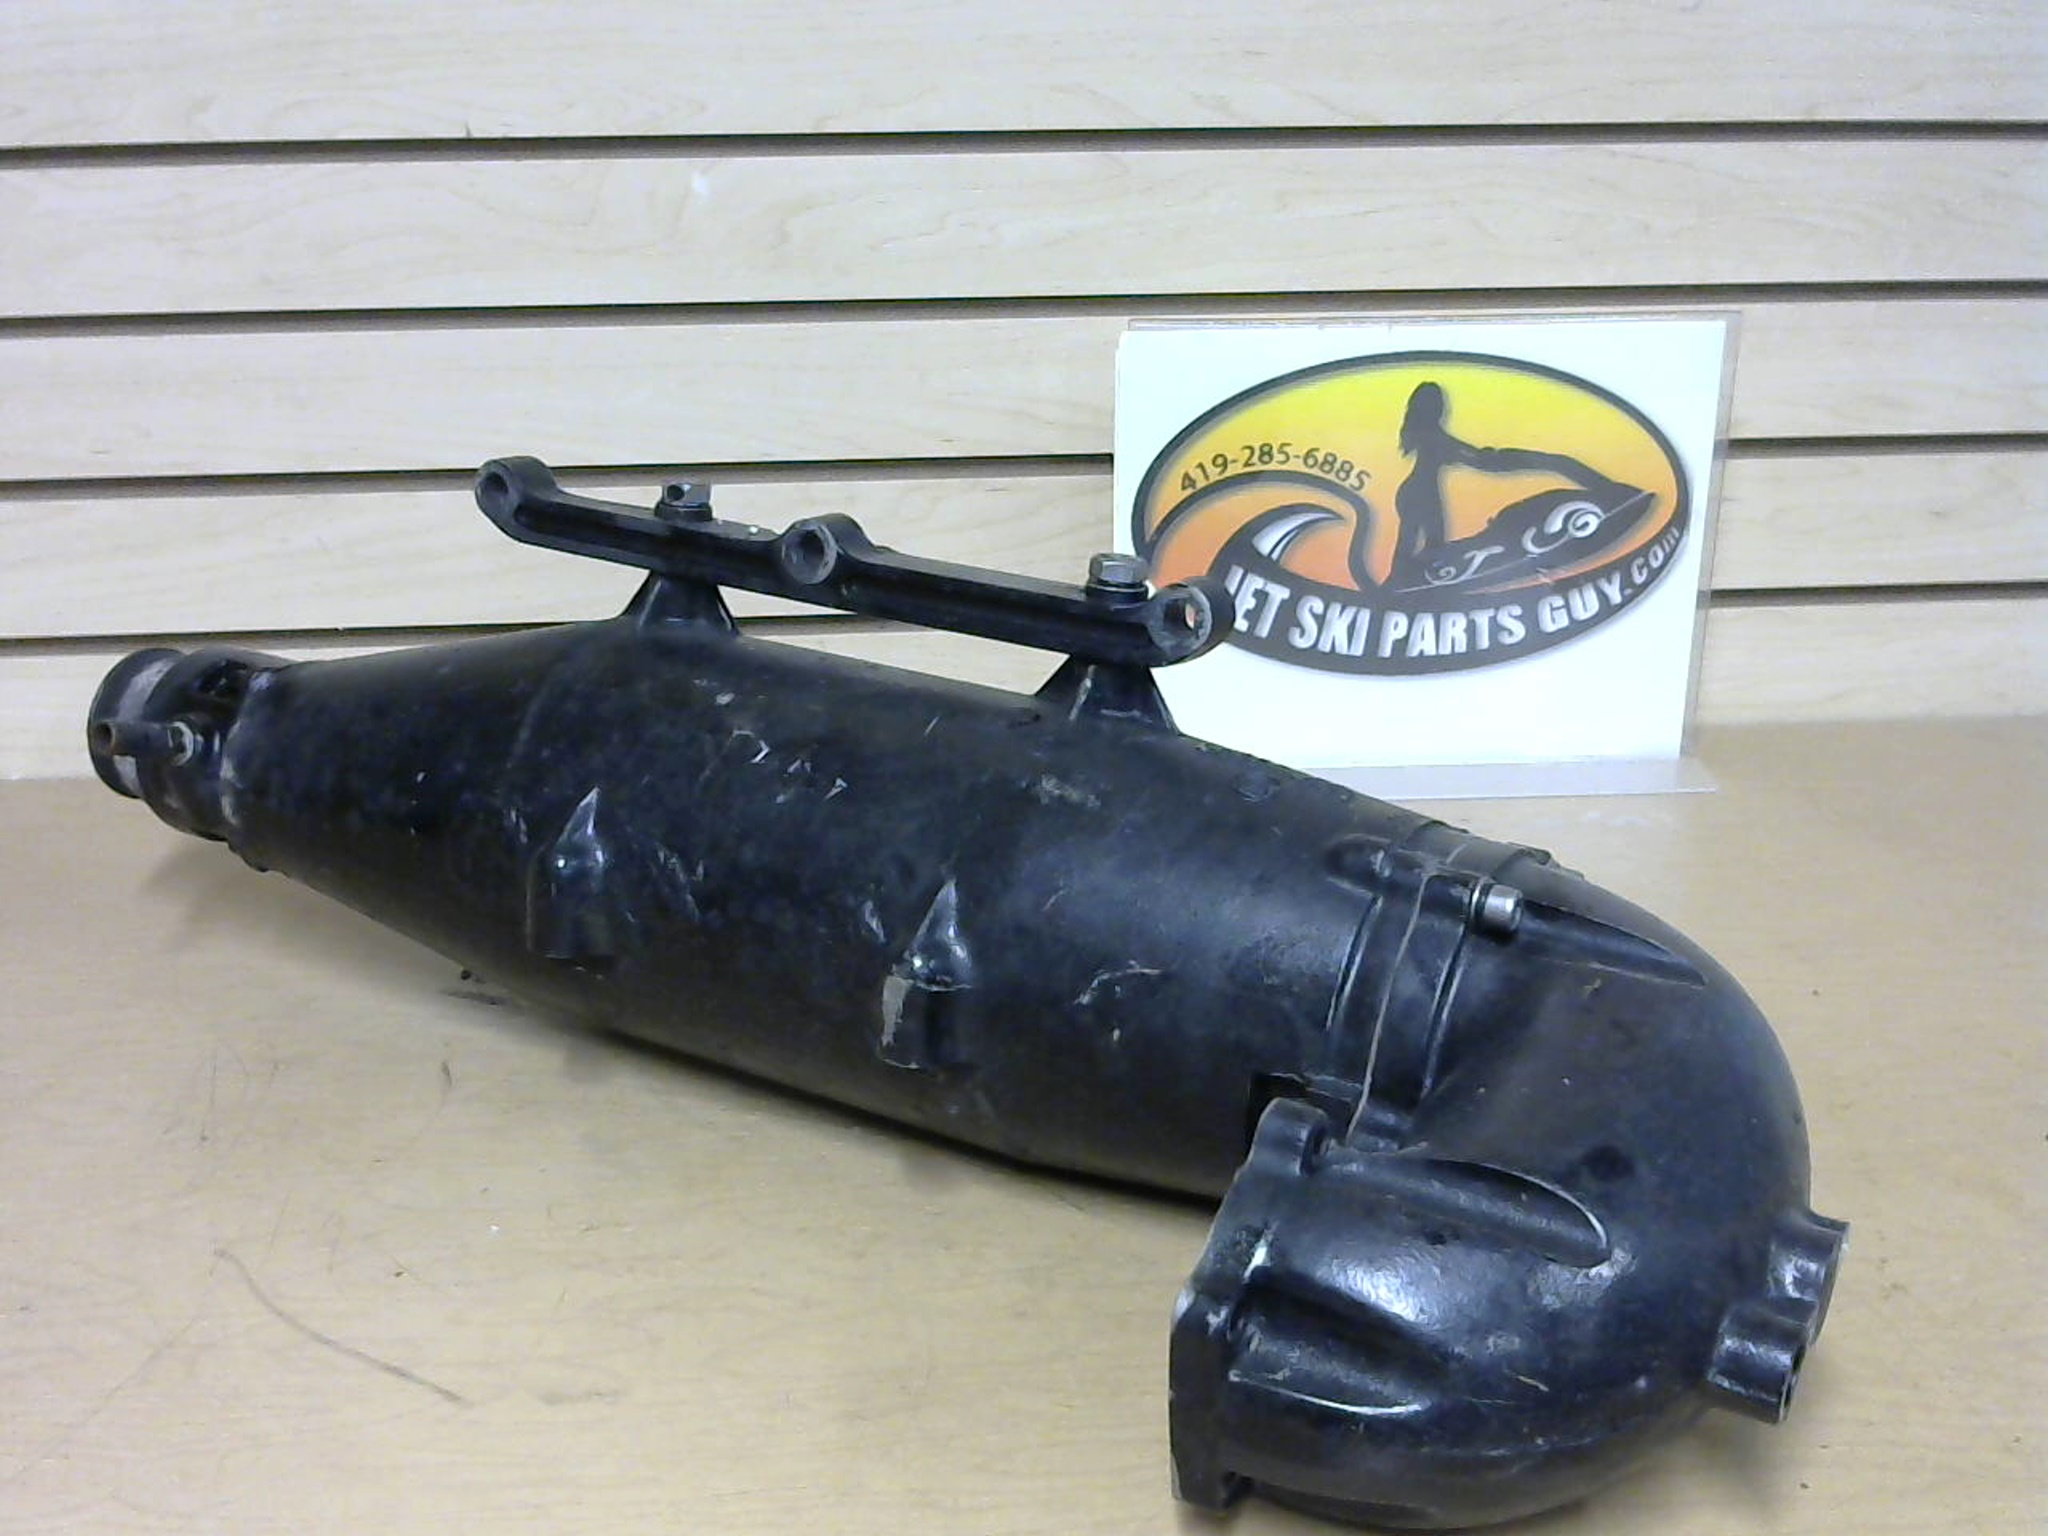 1997 Tigershark Monte Carlo 900 Exhaust Expansion Chamber Head Pipe Manifold 0612-651 0612-653